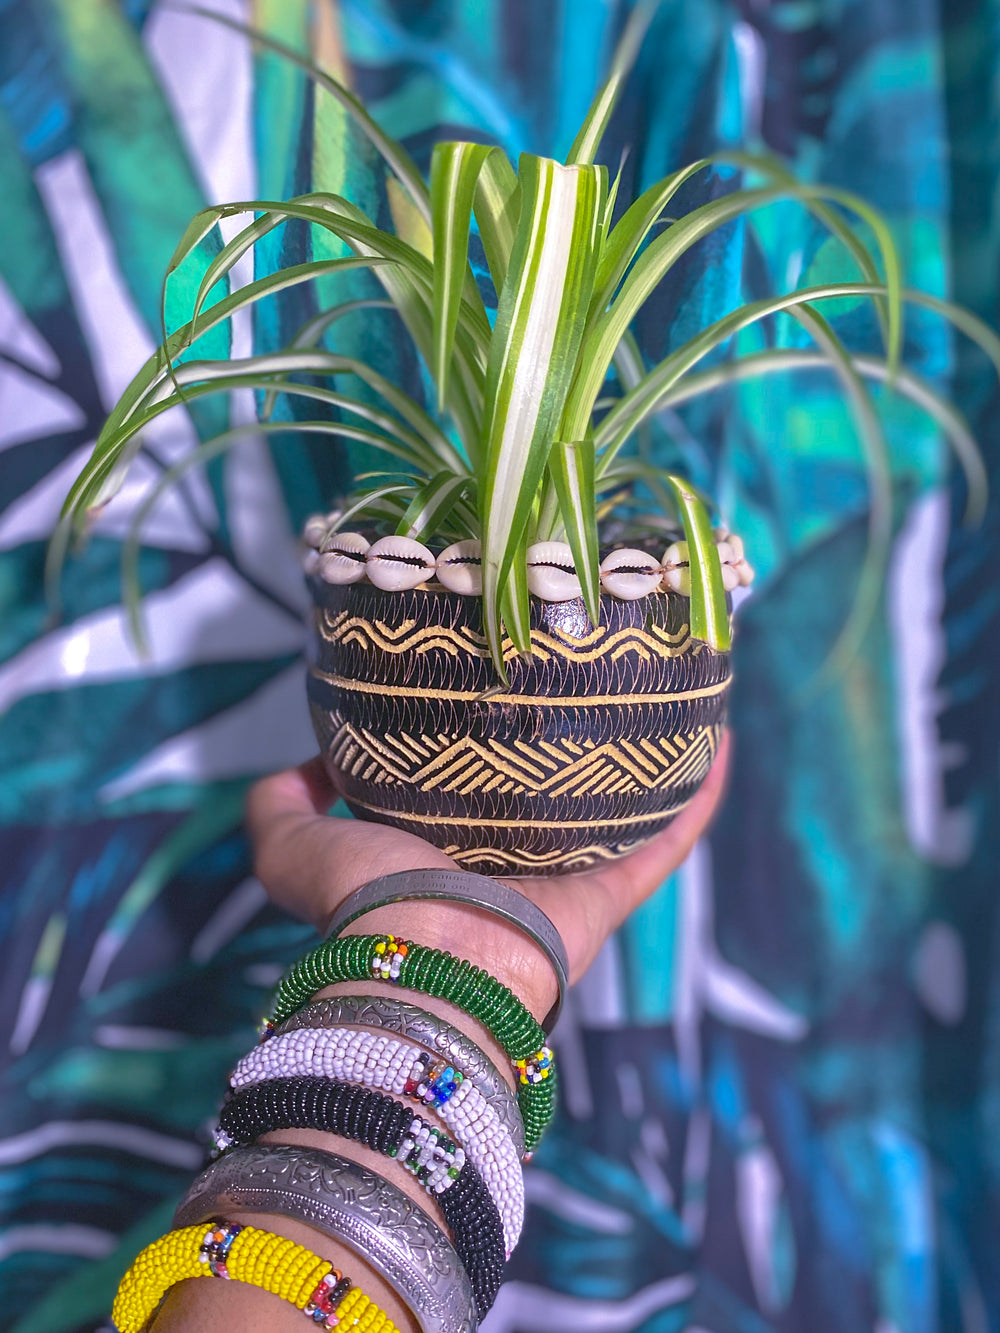 Gourd Calabash Planter Bowl (Made in Kenya 🇰🇪)